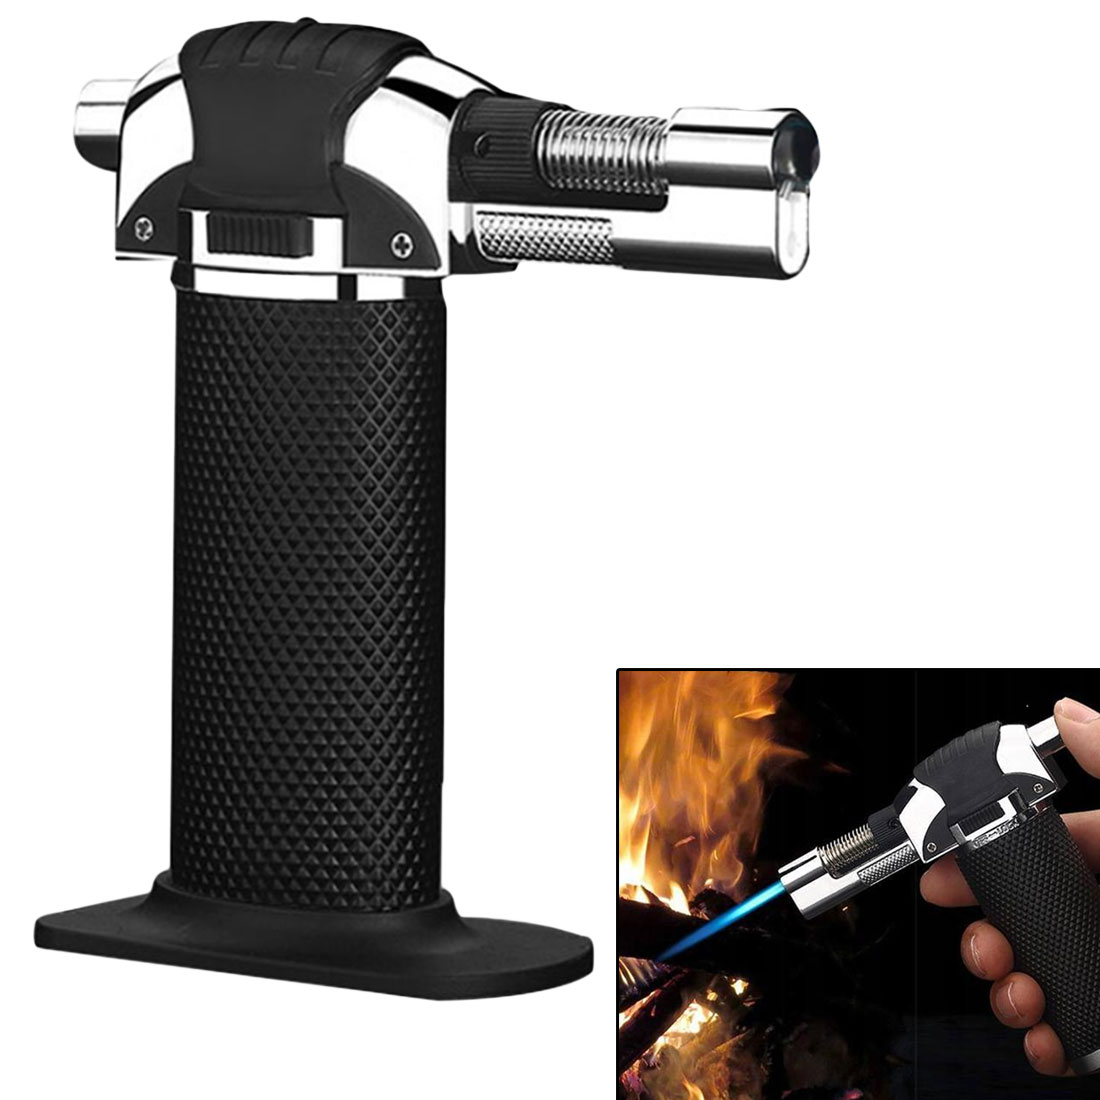 BBQ Brazing Gas Torch Gas Adjustable Flame Inflated Flame Gun Butane Lighter Burning Electricity Ignite Welding Outdoor Camping цена